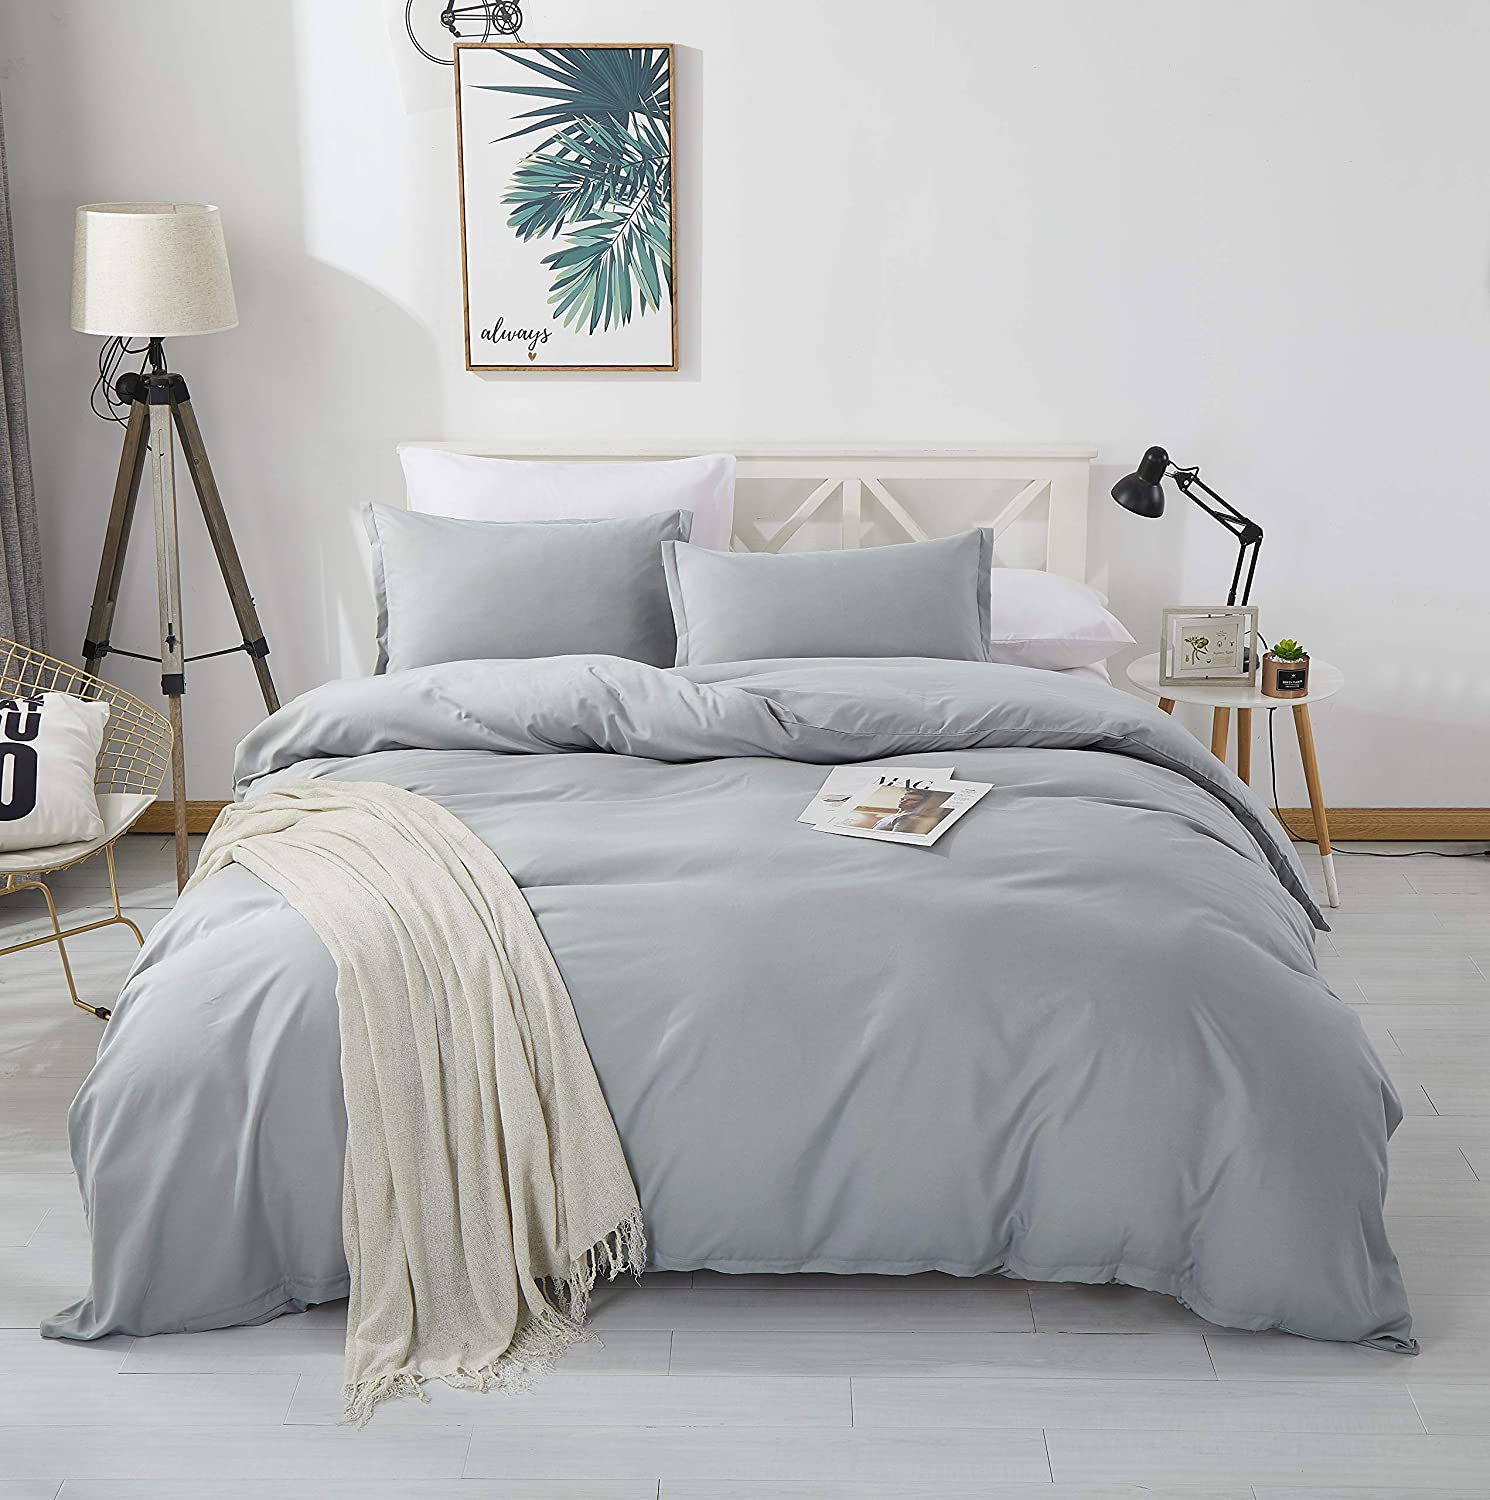 Alazuria Bedding Duvet Cover 3 Piece Set 100% Washed Microfiber-Ultra Soft Breathable Hypoallergenic with Zipper Closure (1 Comforter Cover + 2 Pillow Shams) Cloud Grey, Queen